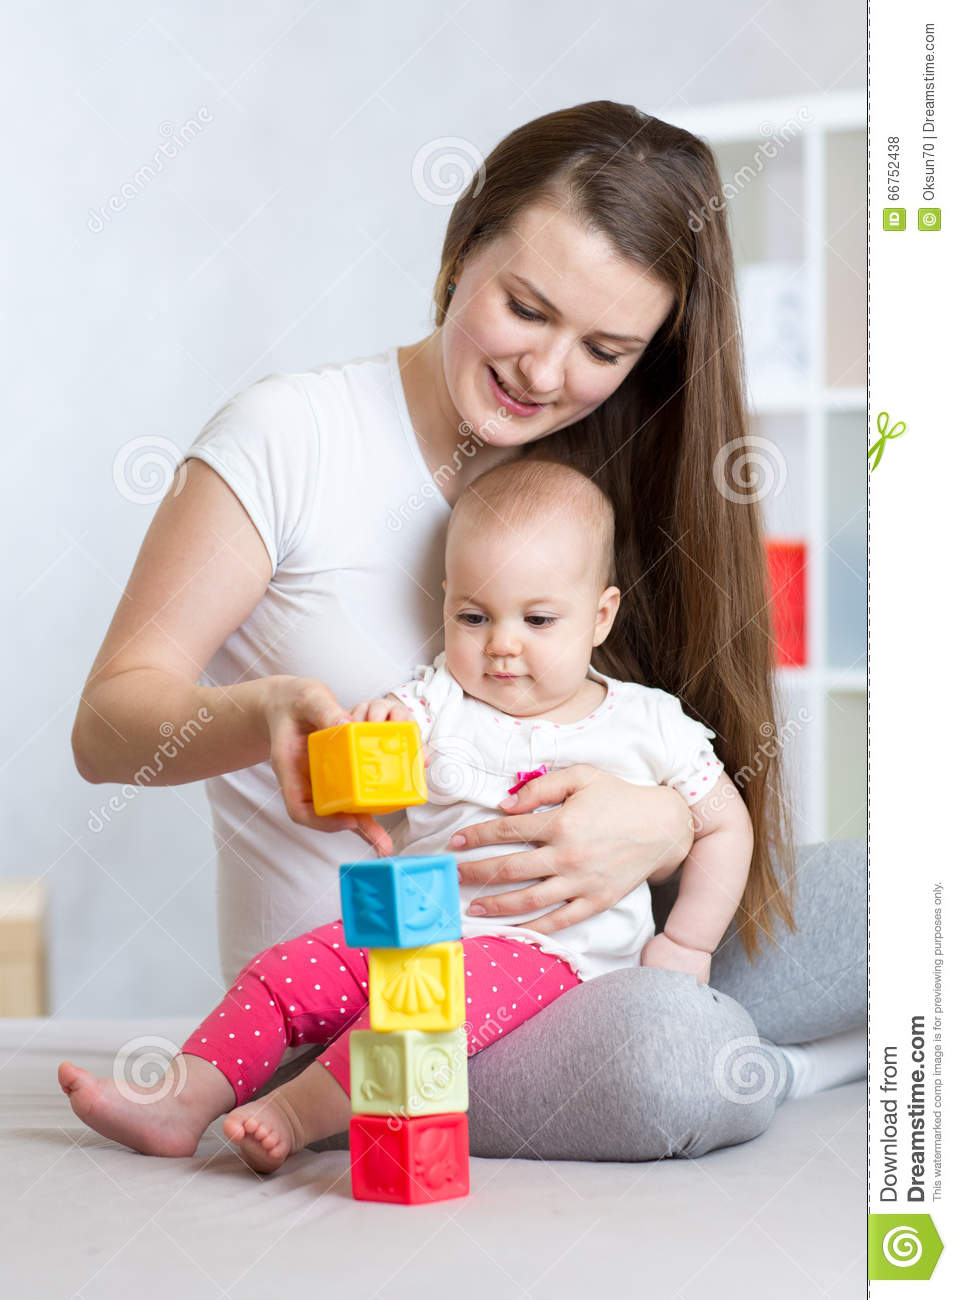 Mother and baby play with building blocks toy in nursery